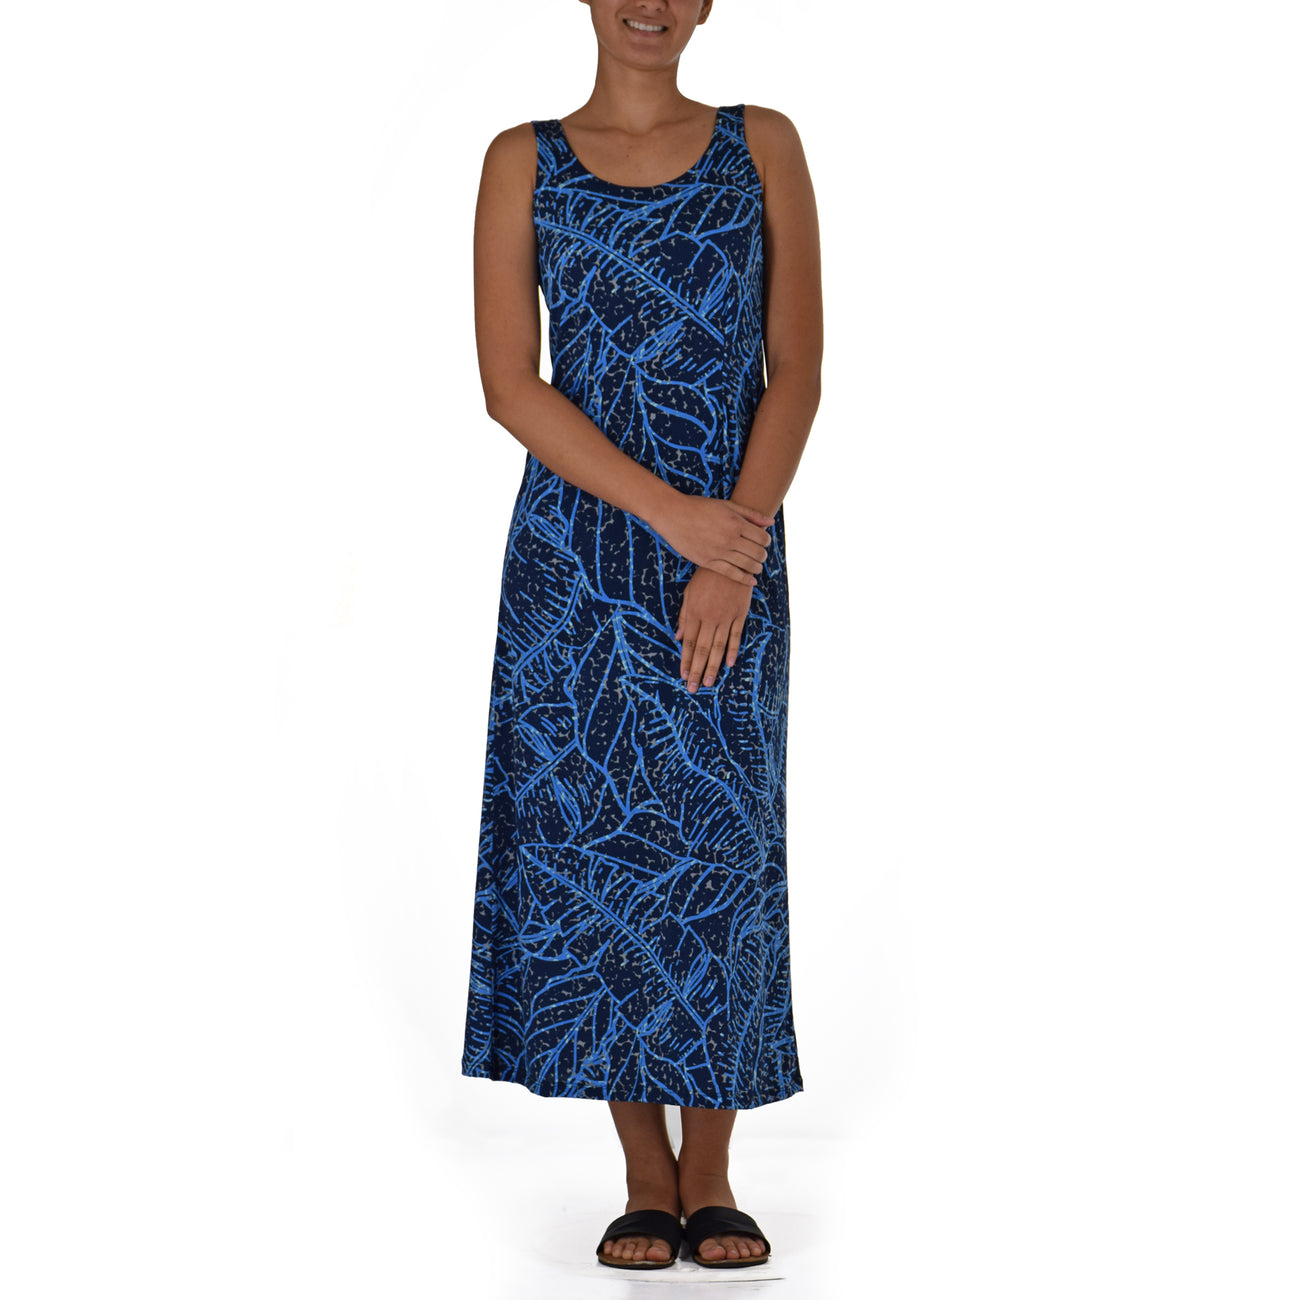 WAIPI'O LONG TANK KNIT DRESS